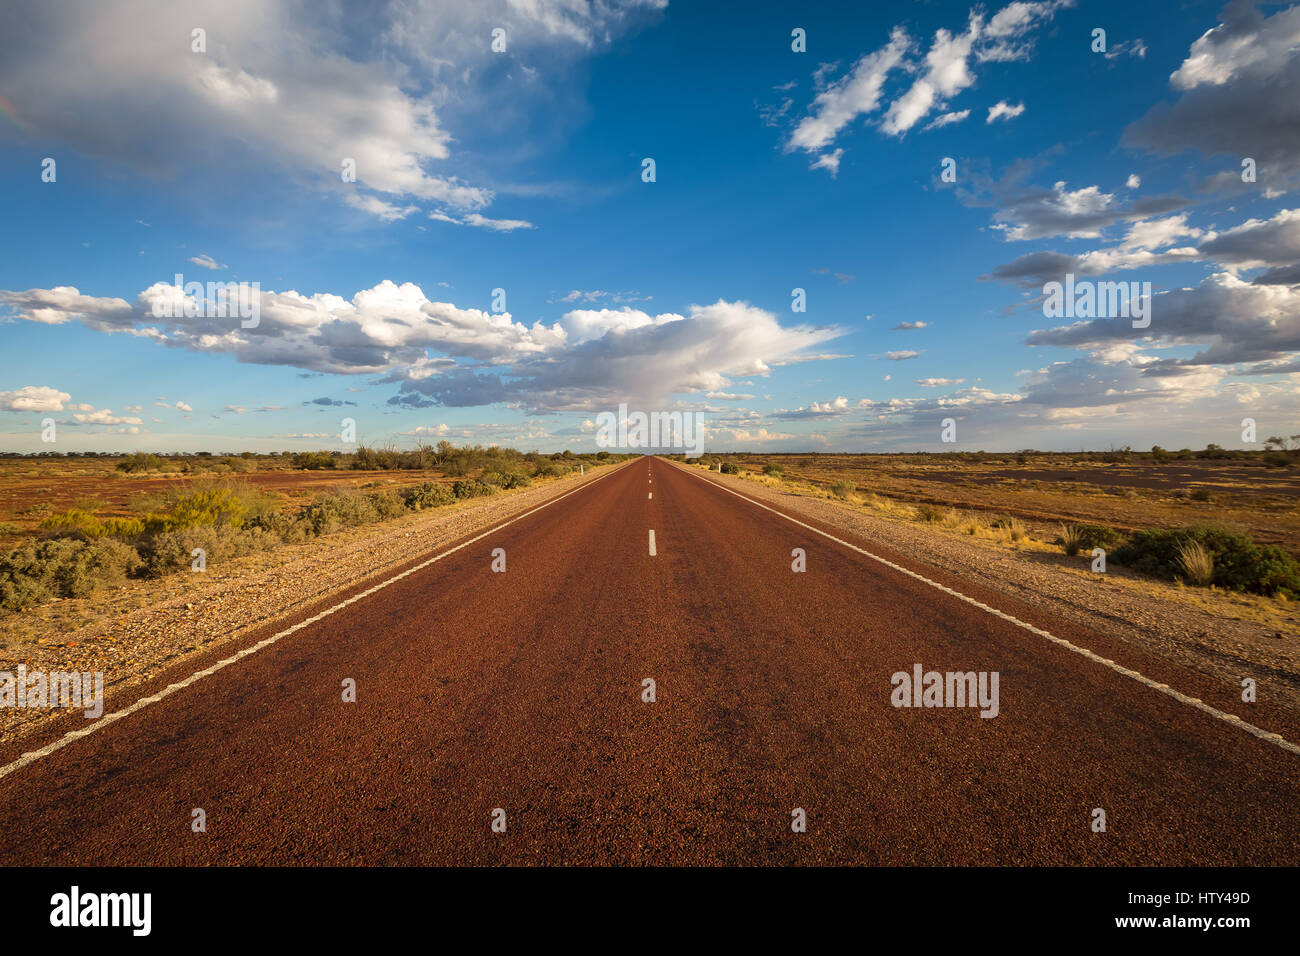 Outback Road - Australien Stockbild